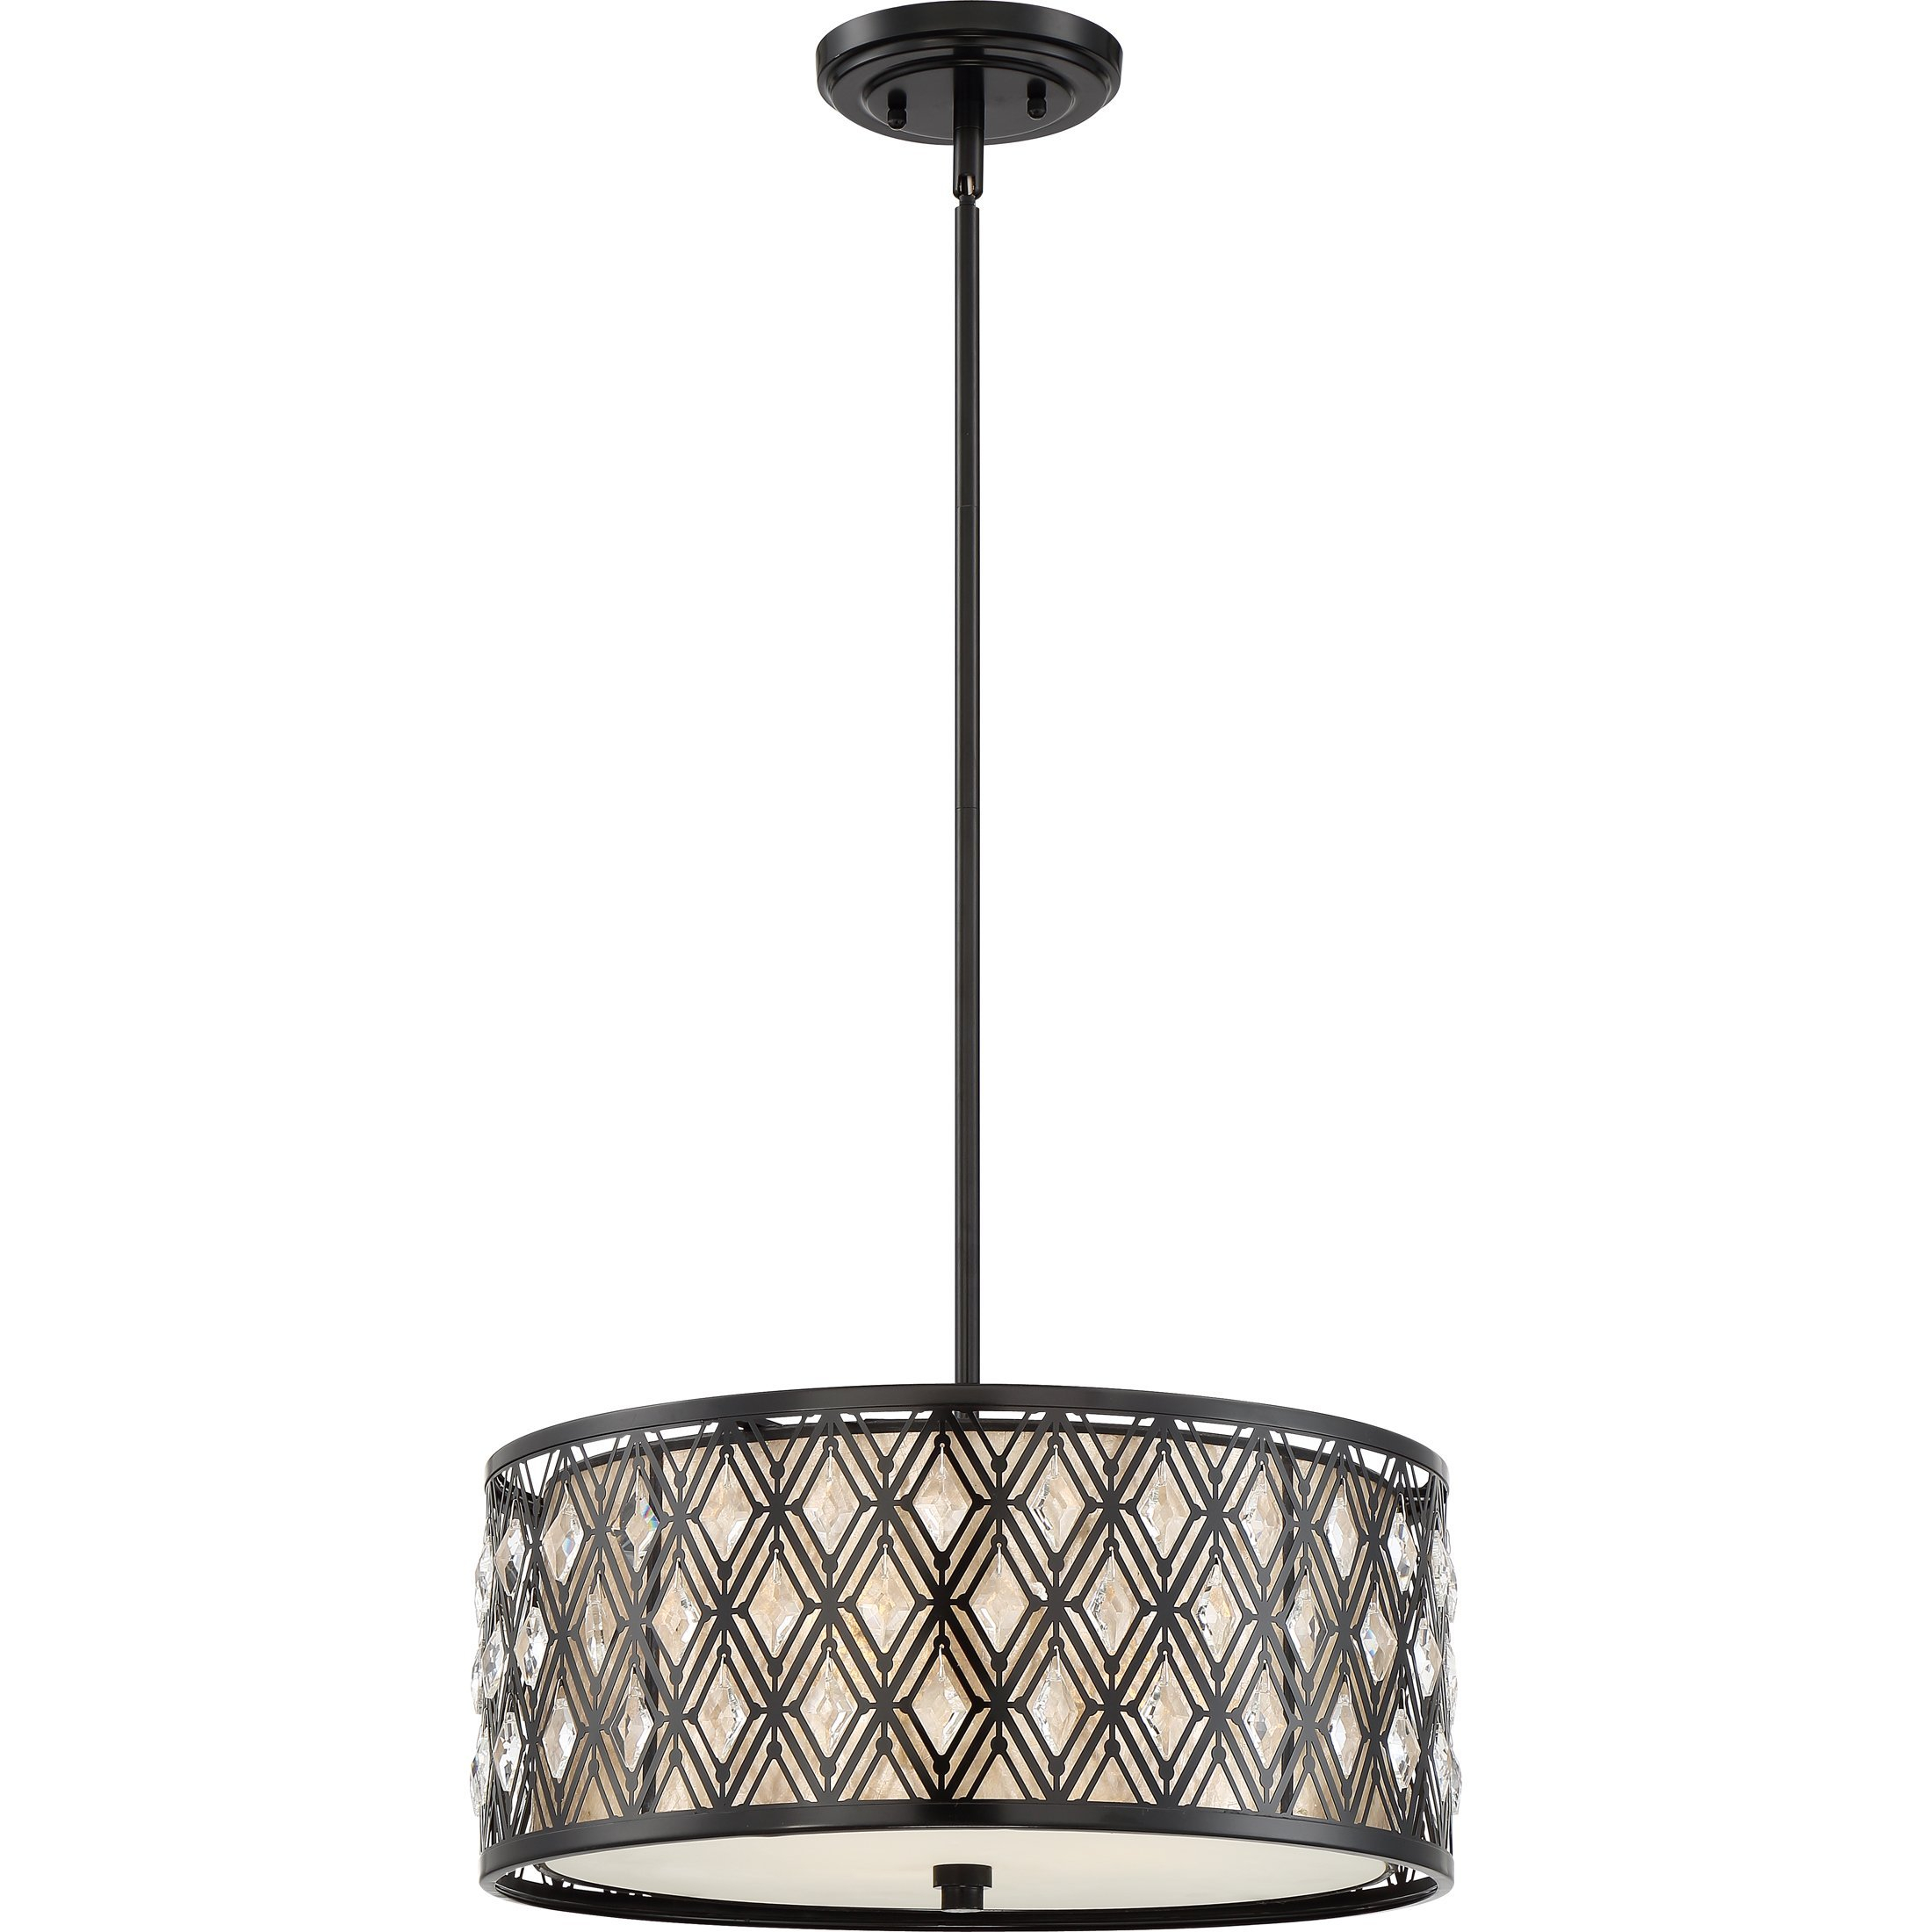 Drum Pendant Lights In Burnished Silver Finish F2707 Hanging Pertaining To Tadwick 3 Light Single Drum Chandeliers (Gallery 24 of 30)